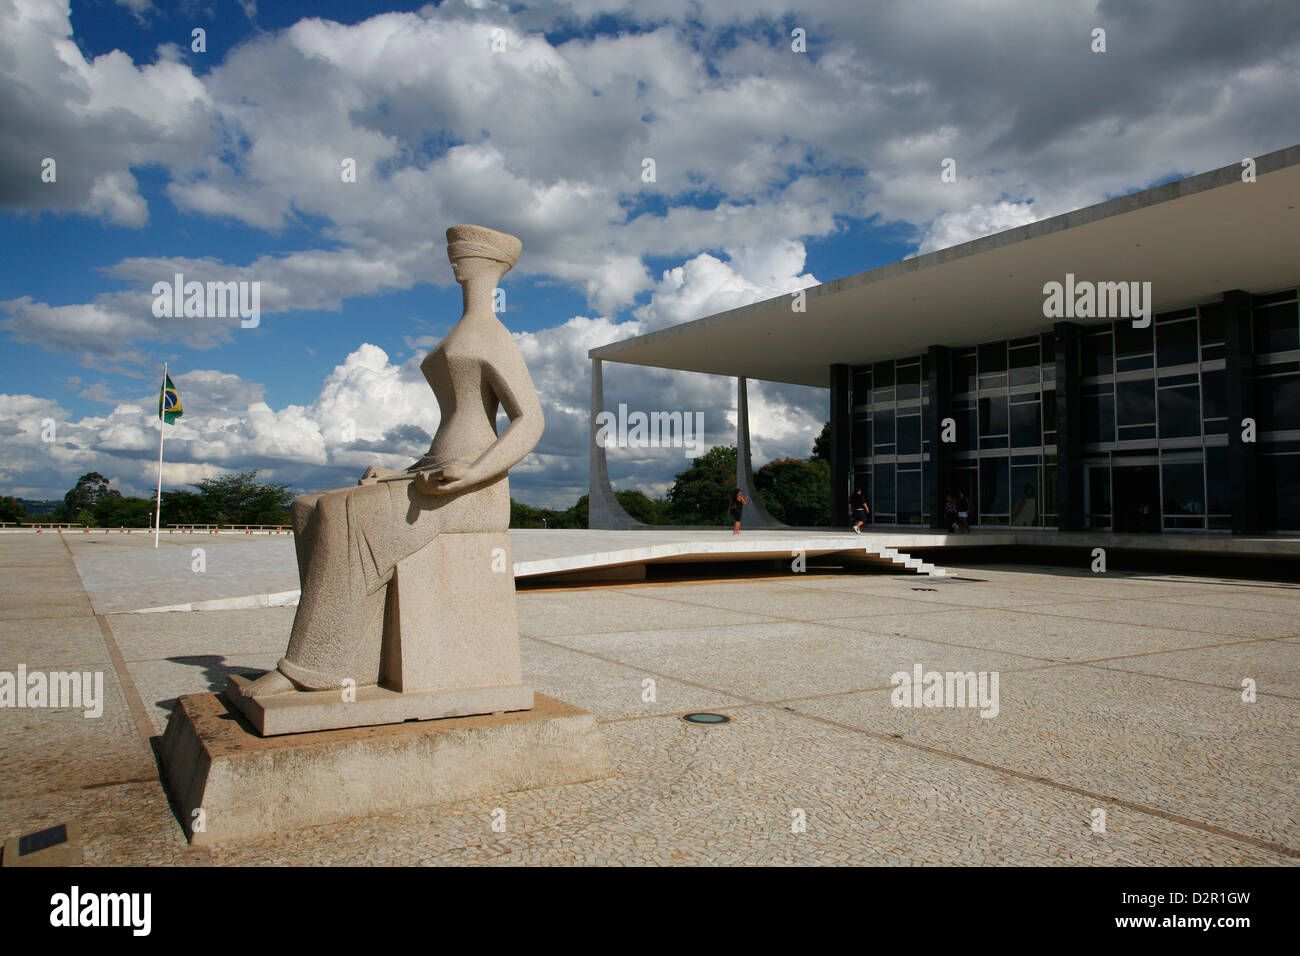 Justice sculpture in front of the Supremo Tribunal Federal (Supreme Federal Tribuna), Brasilia, Brazil - Stock Image